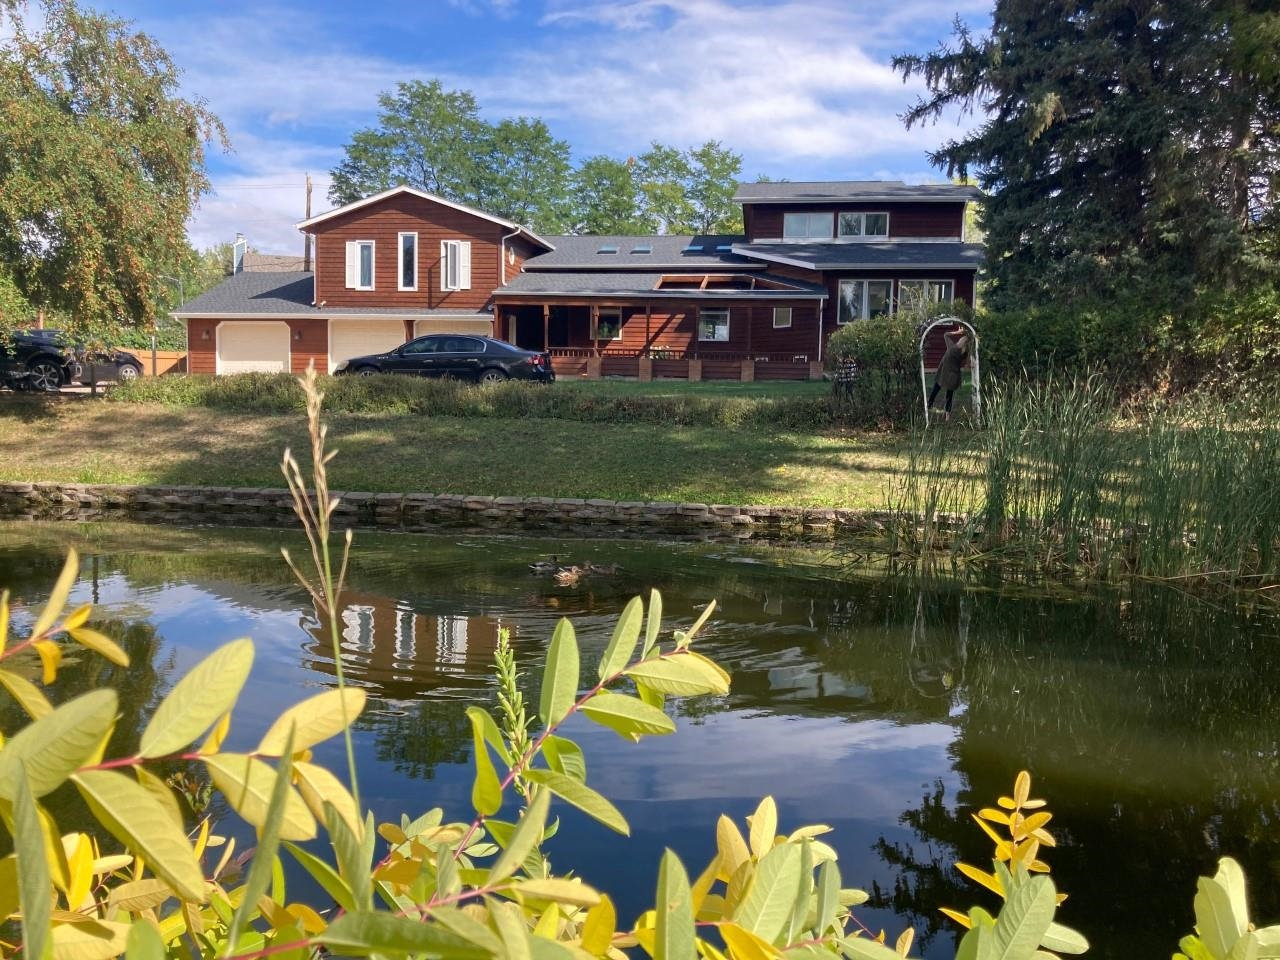 Listed by, Bobby Sundby 209-2777 and Kathy Sundby, SUN REAL ESTATE 484-0422.  Great convenient location close to Arrowhead Golf Course.  Large lot with tons of privacy, mature trees and pond in the front yard for wildlife viewing.City has easement for the pond & the pond is maintained by the City. This home has 4 bedrooms, 4 baths, 3 car garage and is over 5000 sq. ft. Kitchen is perfect for entertaining with an open concept, quartz countertops, and an extra-large 10'x4' island. The living room includes 18ft+ vaulted ceiling, loft area, floor to ceiling bookshelves and panoramic Pella windows. The upstairs includes 3 beds/ 2 baths. The 4th bedroom is separate for a great guest room or office. This home includes tons of at-home entertainment options including a theater room and gym/rec room. The backyard is fenced with a shed, garden boxes, and large deck. New shingles in 2020, updated engineered bamboo flooring in main rooms, and new carpet upstairs/ basement.